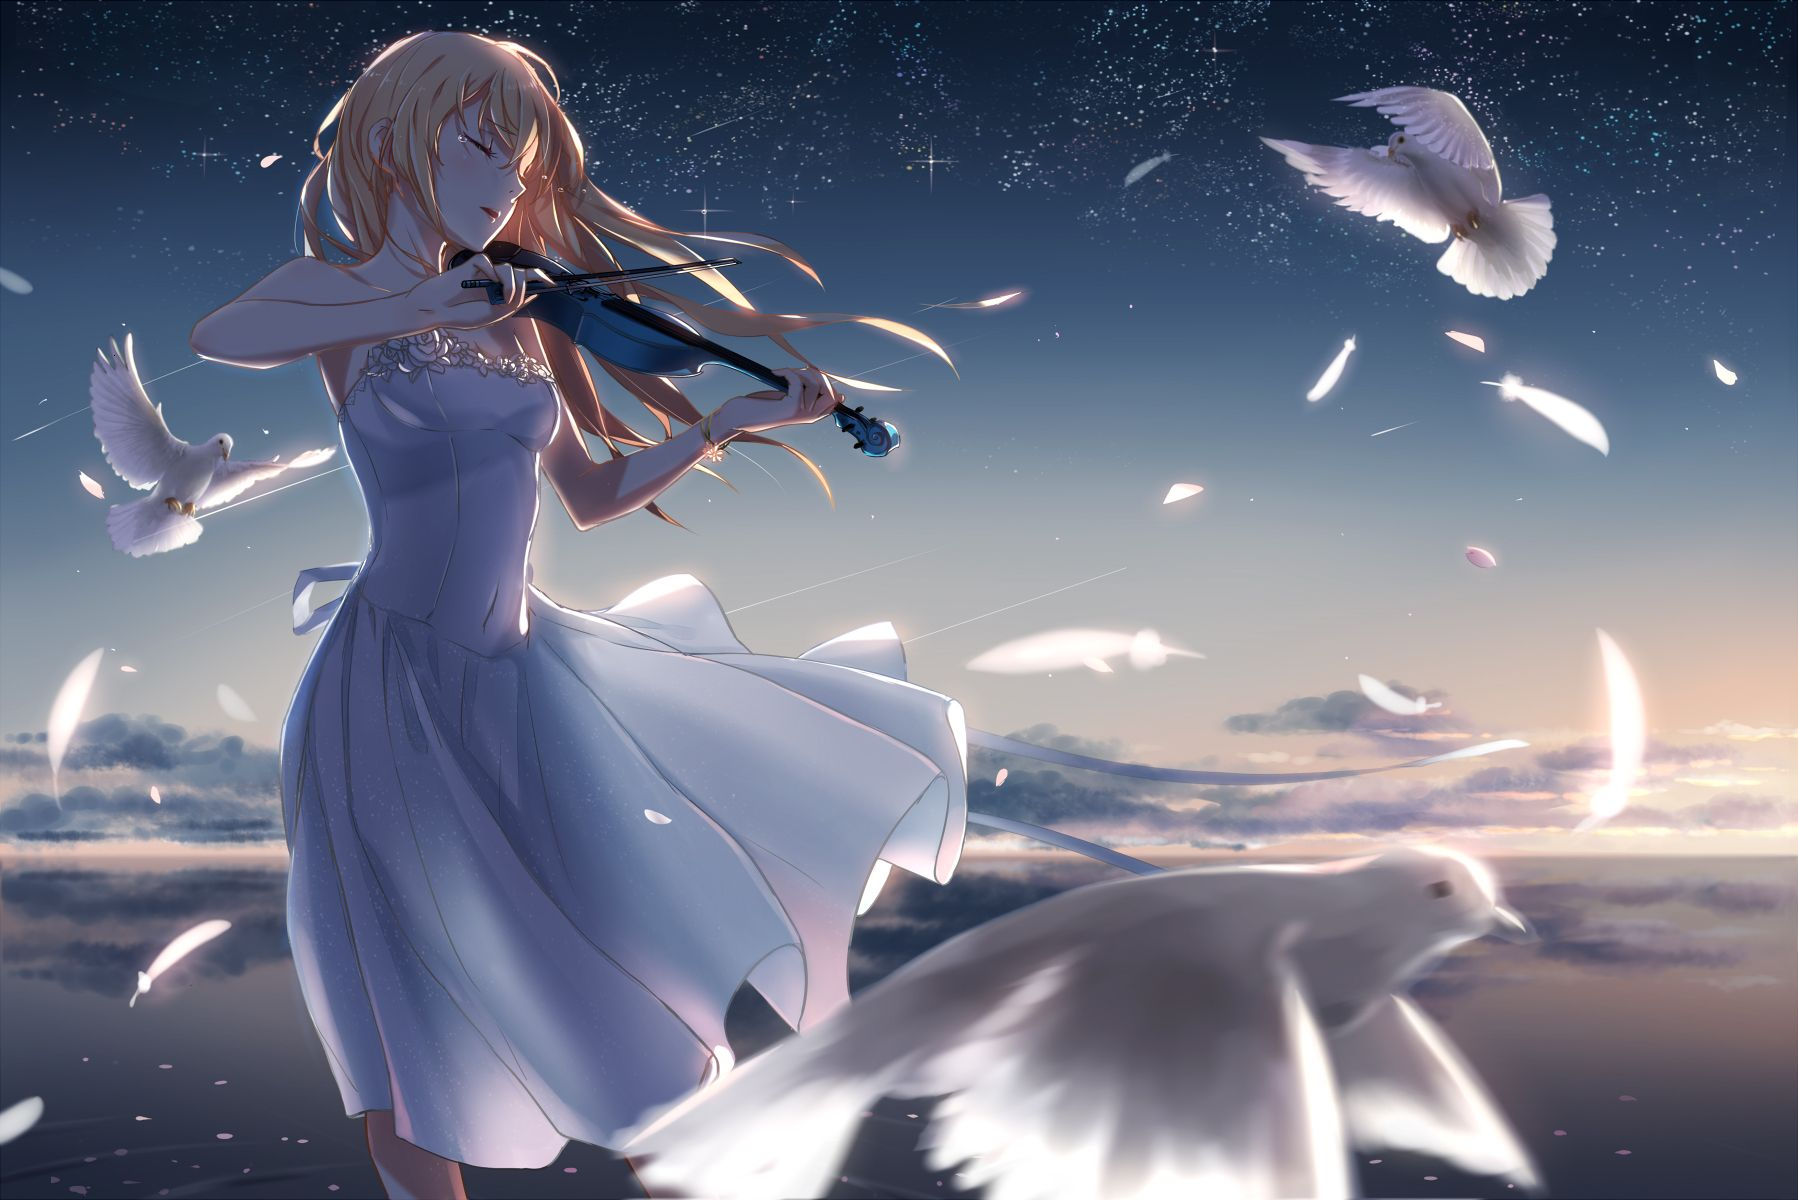 Kao Chan Computer Wallpapers Desktop Backgrounds 1798x1200 Id 578967 Your Lie In April Anime Music Anime